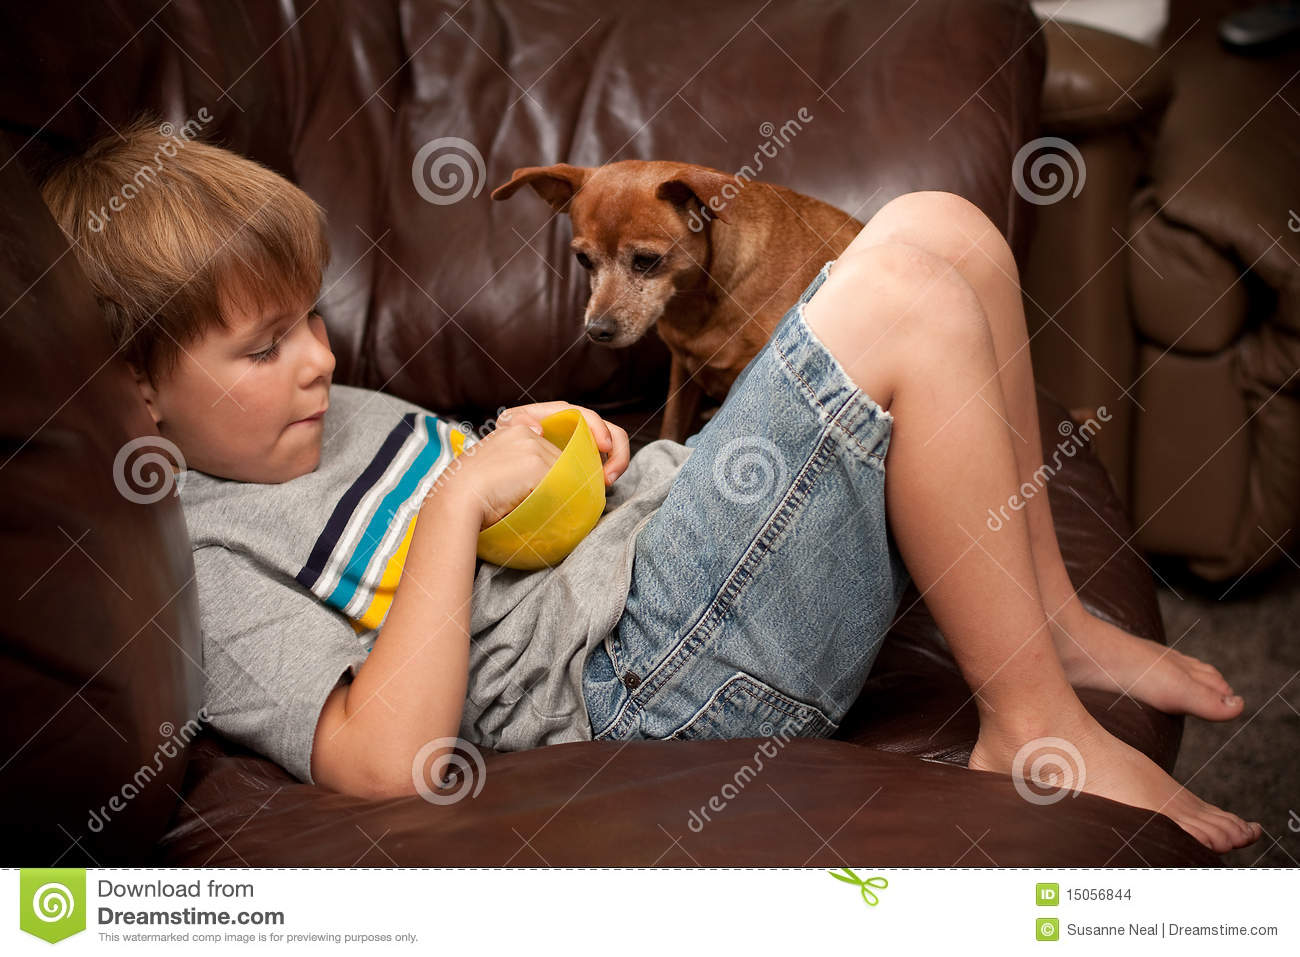 Boy Eating Cereal With Little Dog Watching Stock Photo